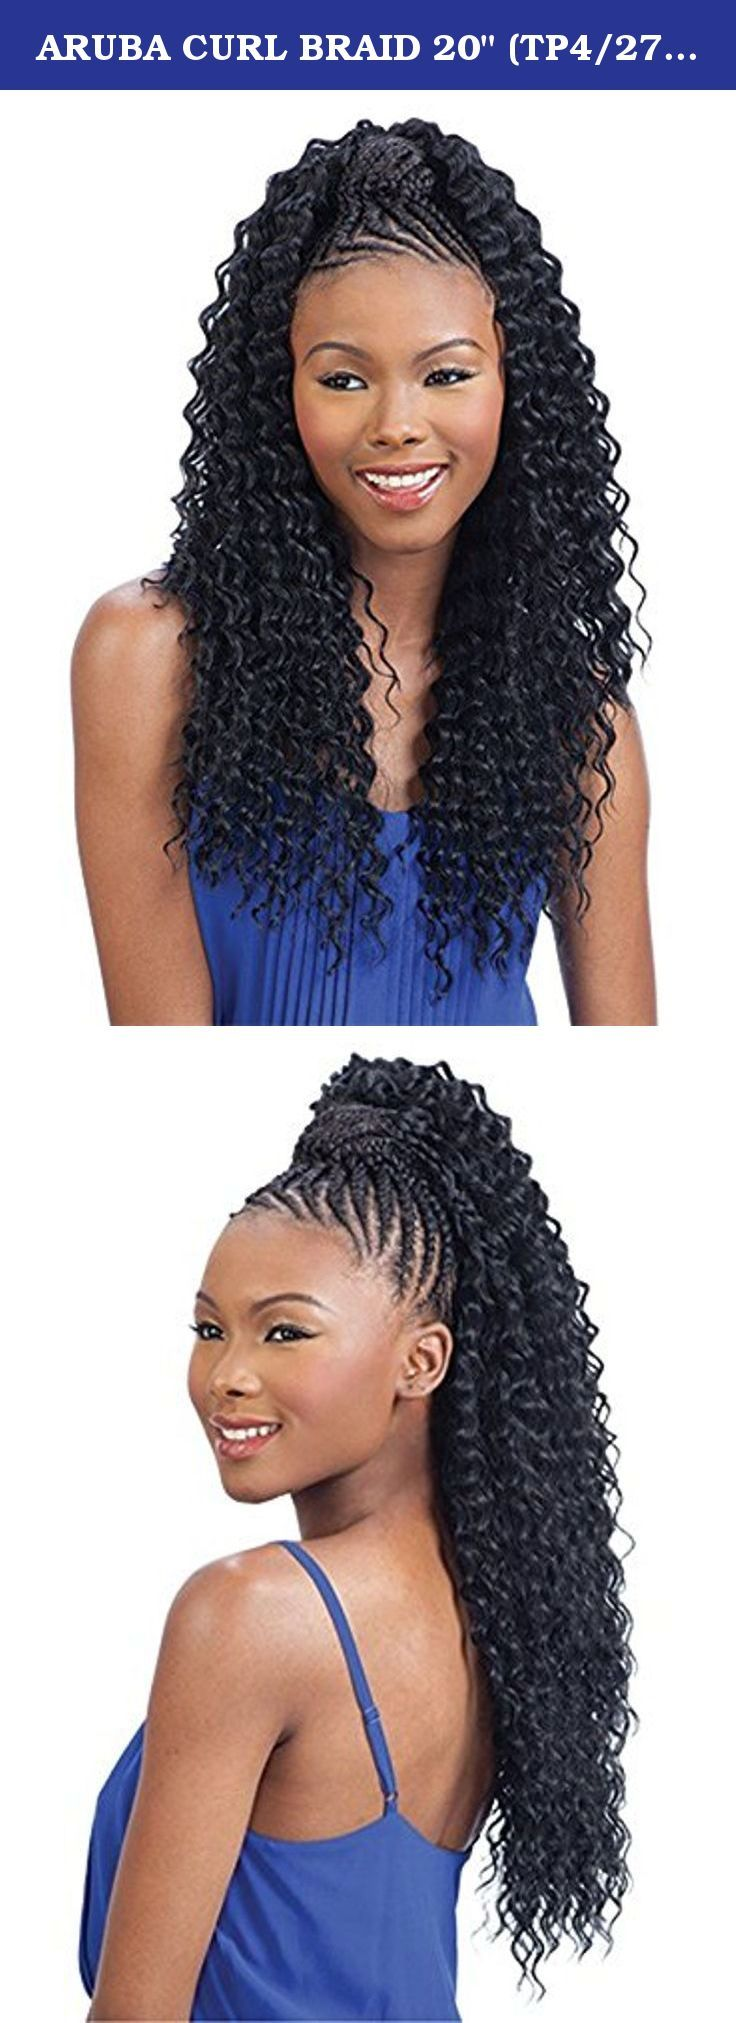 "ARUBA CURL BRAID 20"" (TP4/27) - Freetress Synthetic Braiding Hair. Comb Location:. Adjustable Strap:. Drawstring:. Cap Size: May vary slightly by brand. Circumference: 21.25"" Ear To Ear: 13.5"" Front To Back 14.25""."